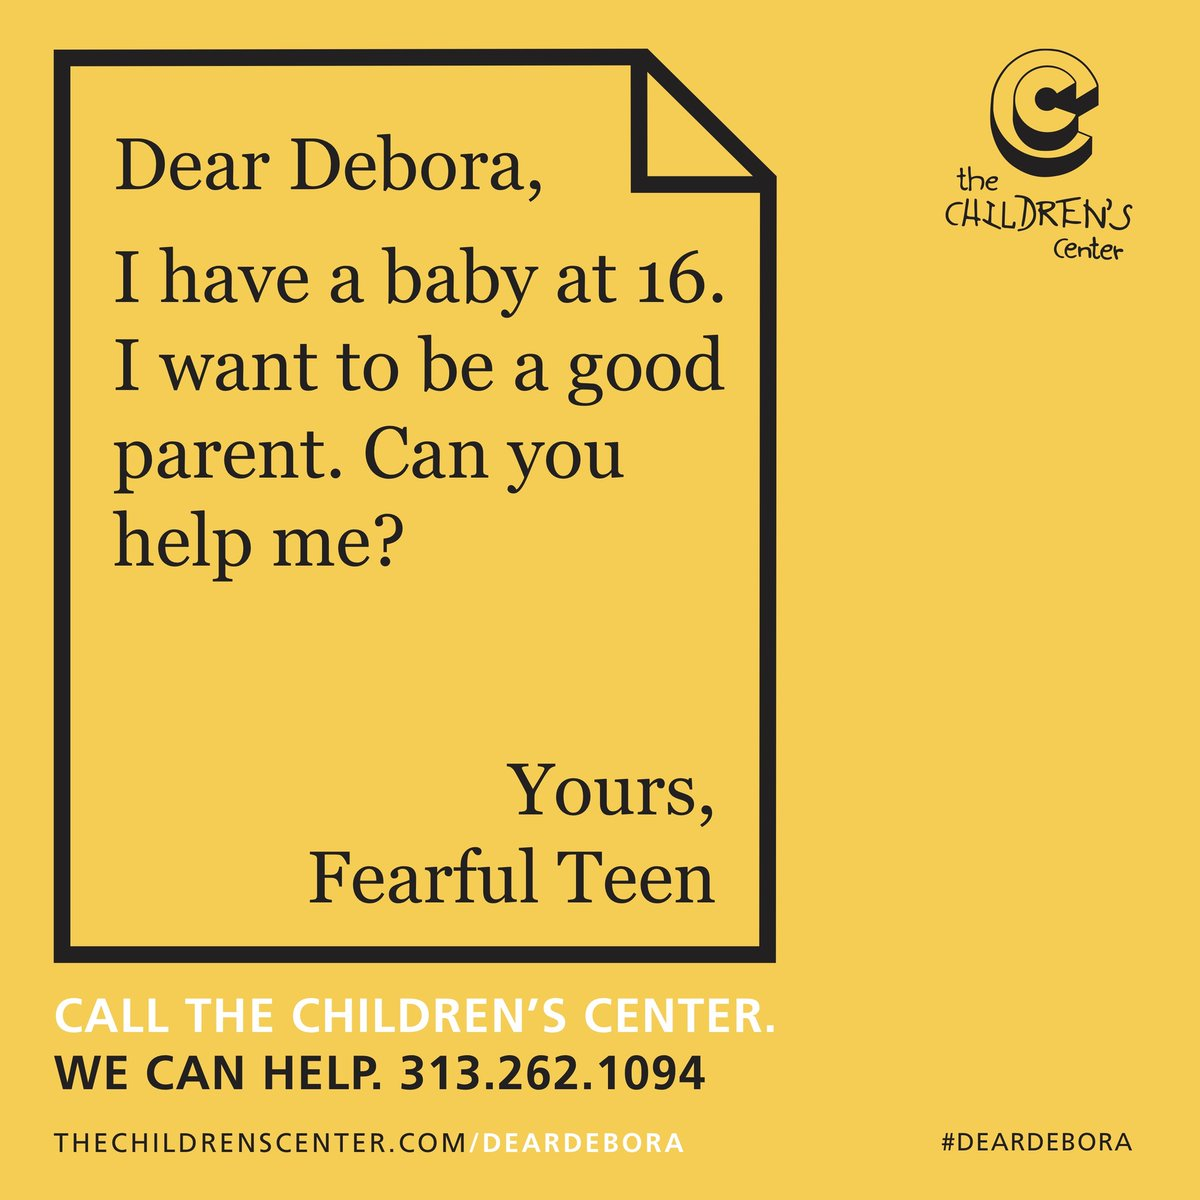 High school is challenging enough — and when you add parenting to that, it's understandably overwhelming. But we're here to help! Call us at (313) 262-1094. #DearDebora #wecanhelp http://bit.ly/2Mgu7j1pic.twitter.com/wLa8mZ6wRO